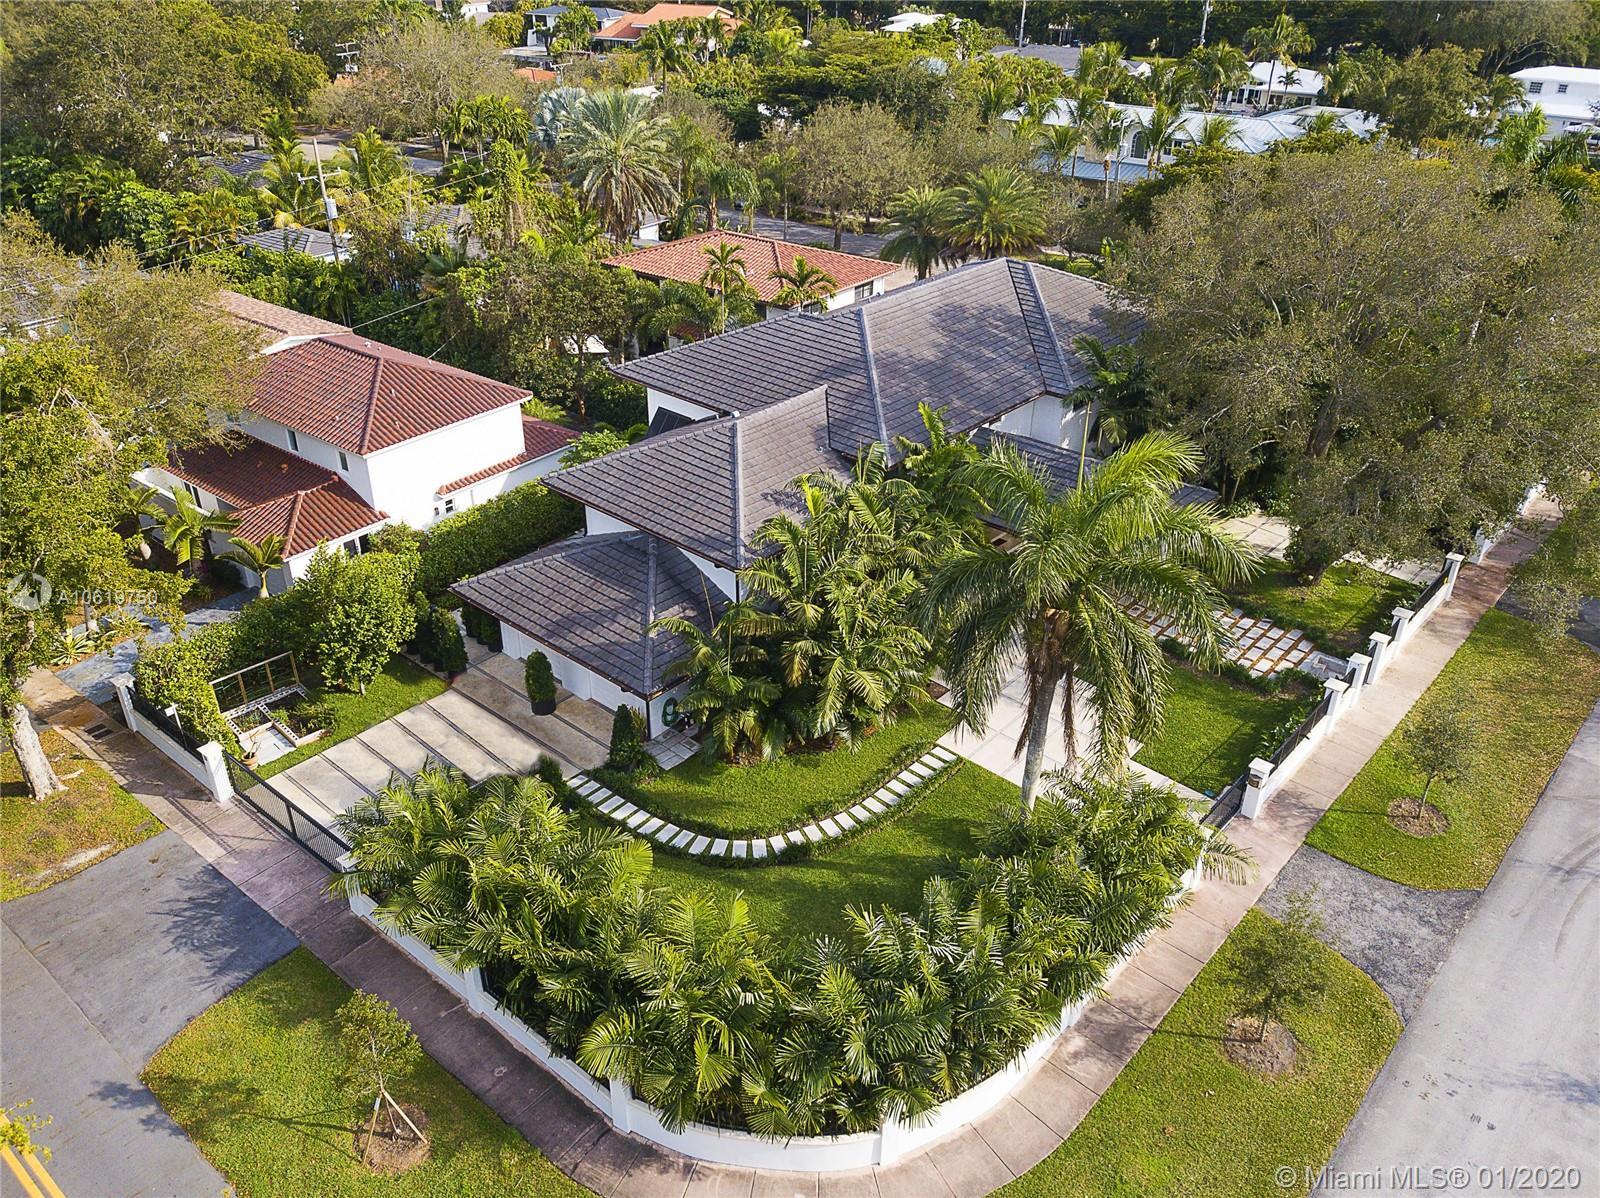 Amid the soaring ceilings, large art walls and beautifully proportioned spaces, this totally renovated 5 bedroom home awaits one of your most discriminating buyers. Sited on a 21,000 s.f. lot in the heart of Coral Gables, this beautiful property is convenient not only to MIA, but also to the Shops of Merrick Park, Dadeland and downtown business district.  With amenities that include a beautiful kitchen with top of the line appliances, pool and adjacent summer kitchen, numerous sitting areas, and stunning garden views from almost any point in the house, this property is an invitation to gracious living and entertaining.